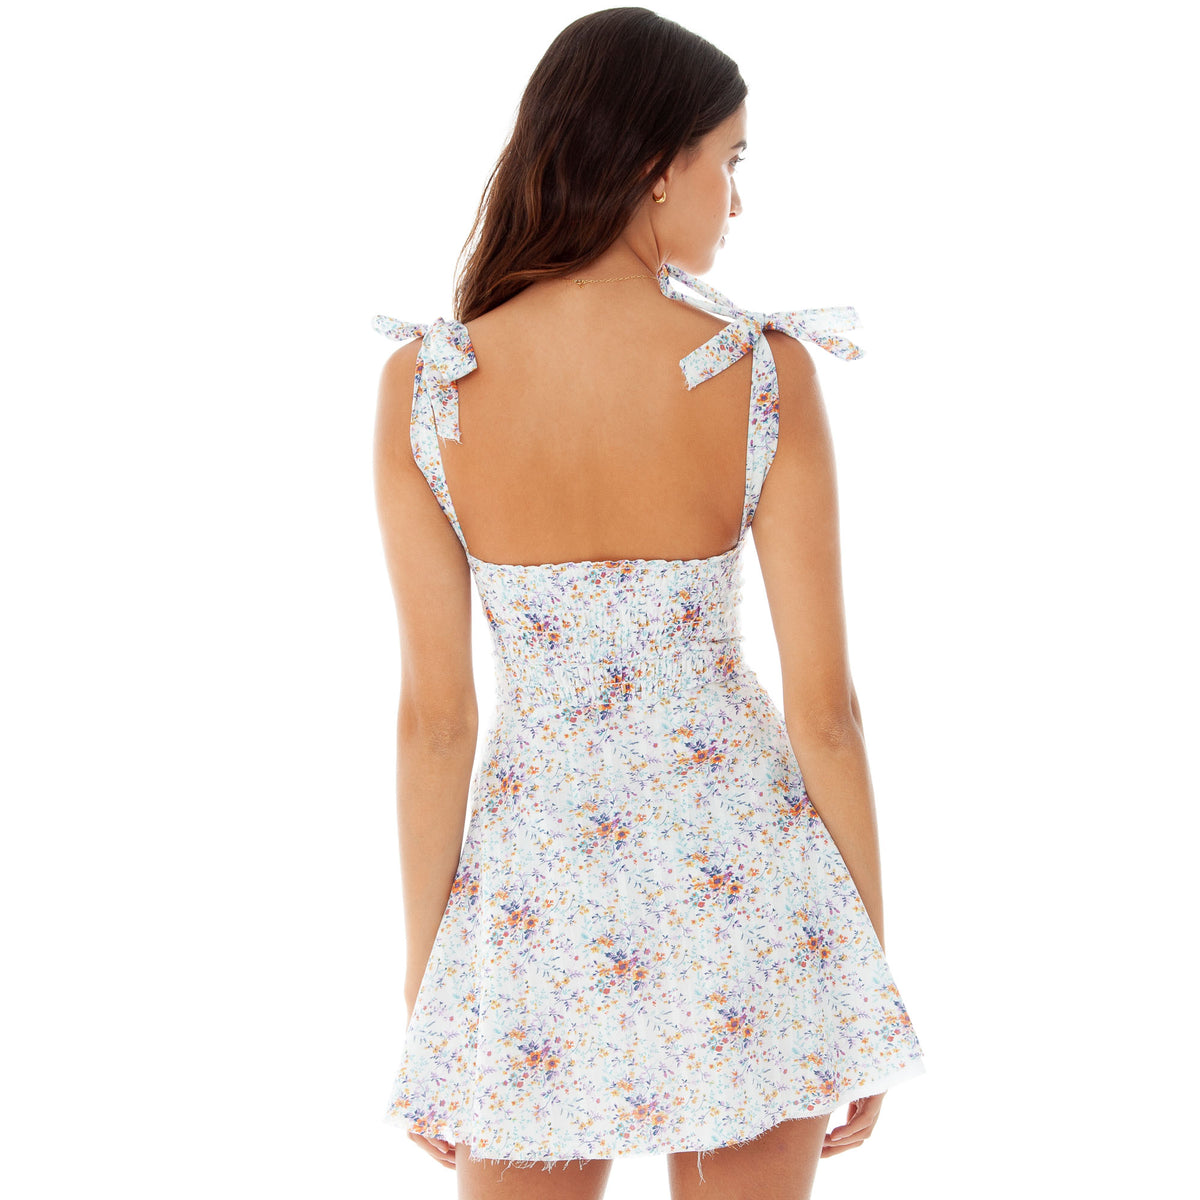 Are You Am I - Laeta Floral Dress